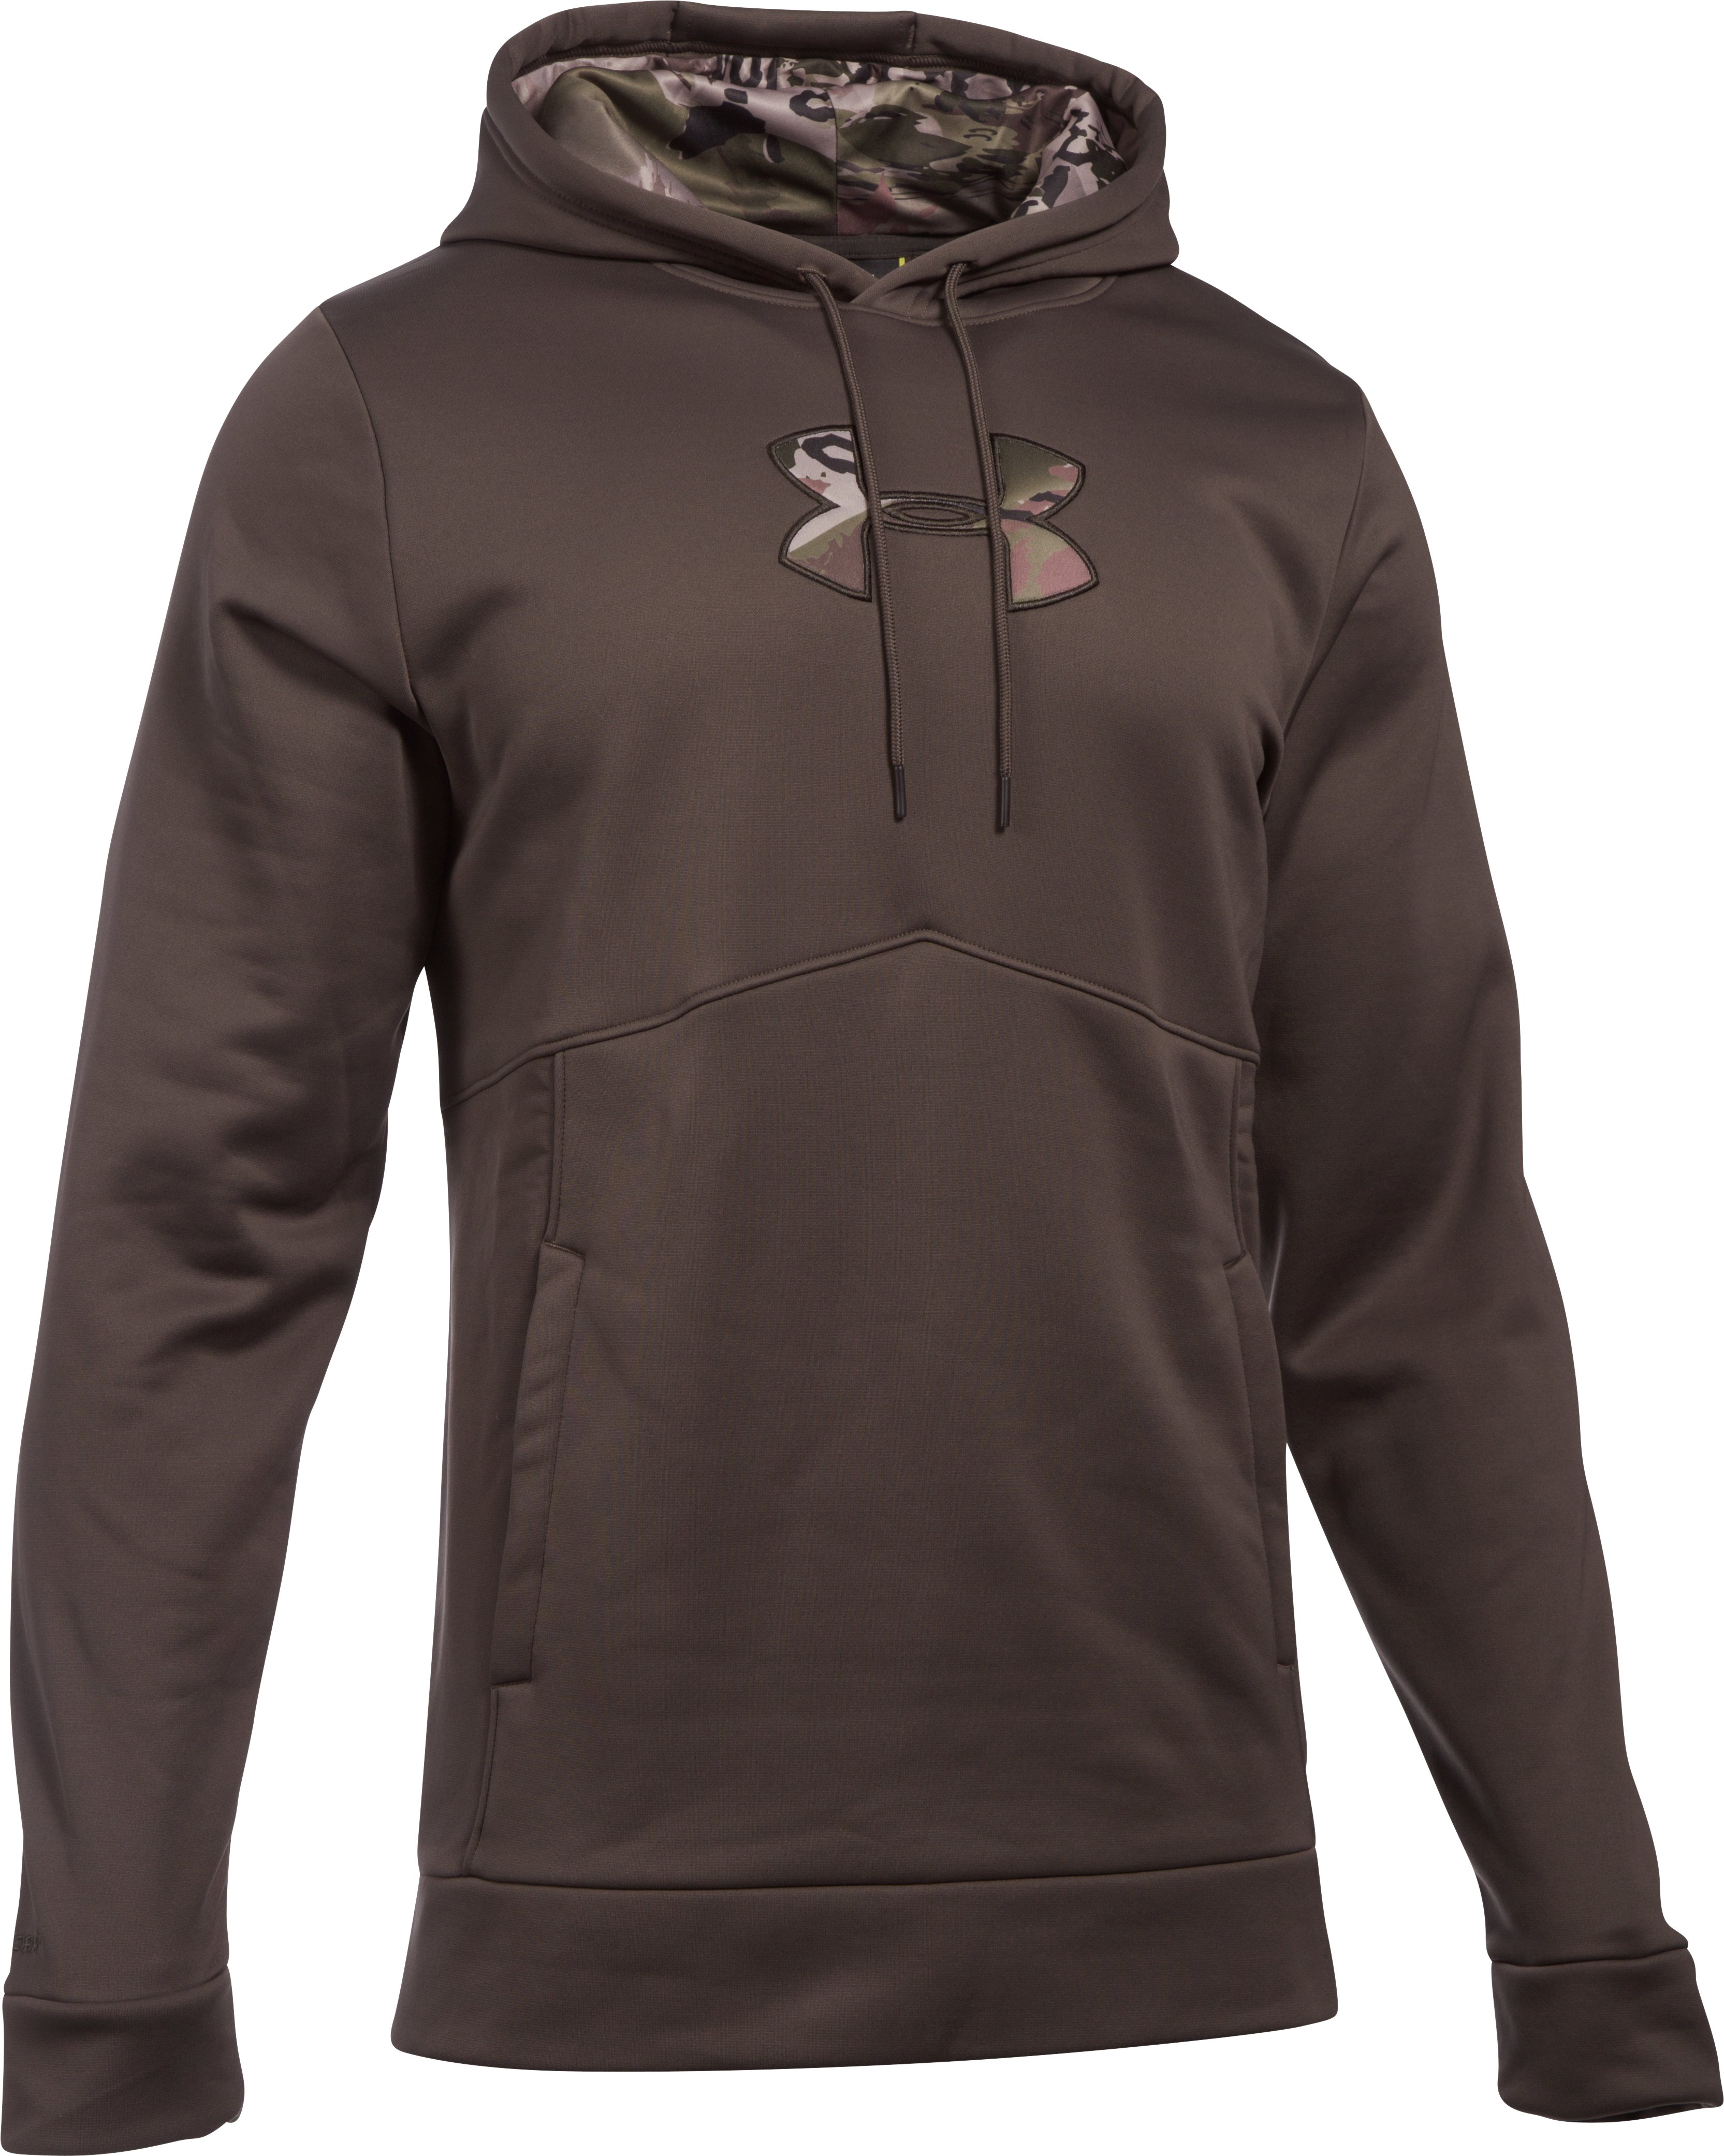 Men's UA Storm Caliber Hoodie – Tall, MAVERICK BROWN